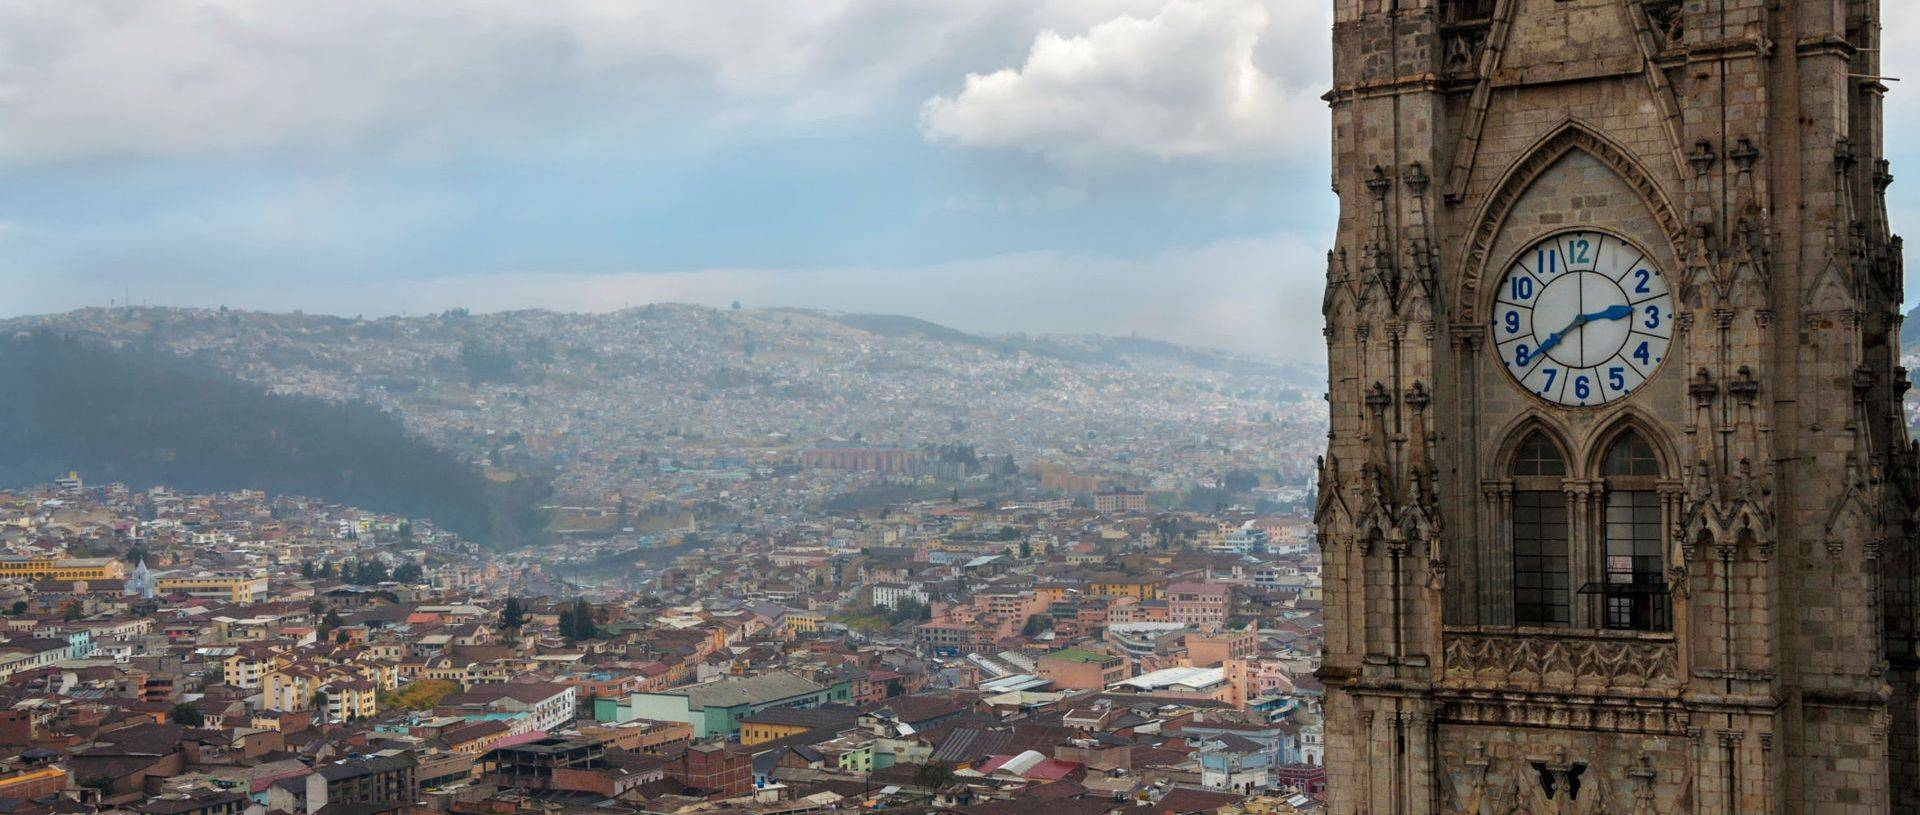 Quito - view over the city.jpg